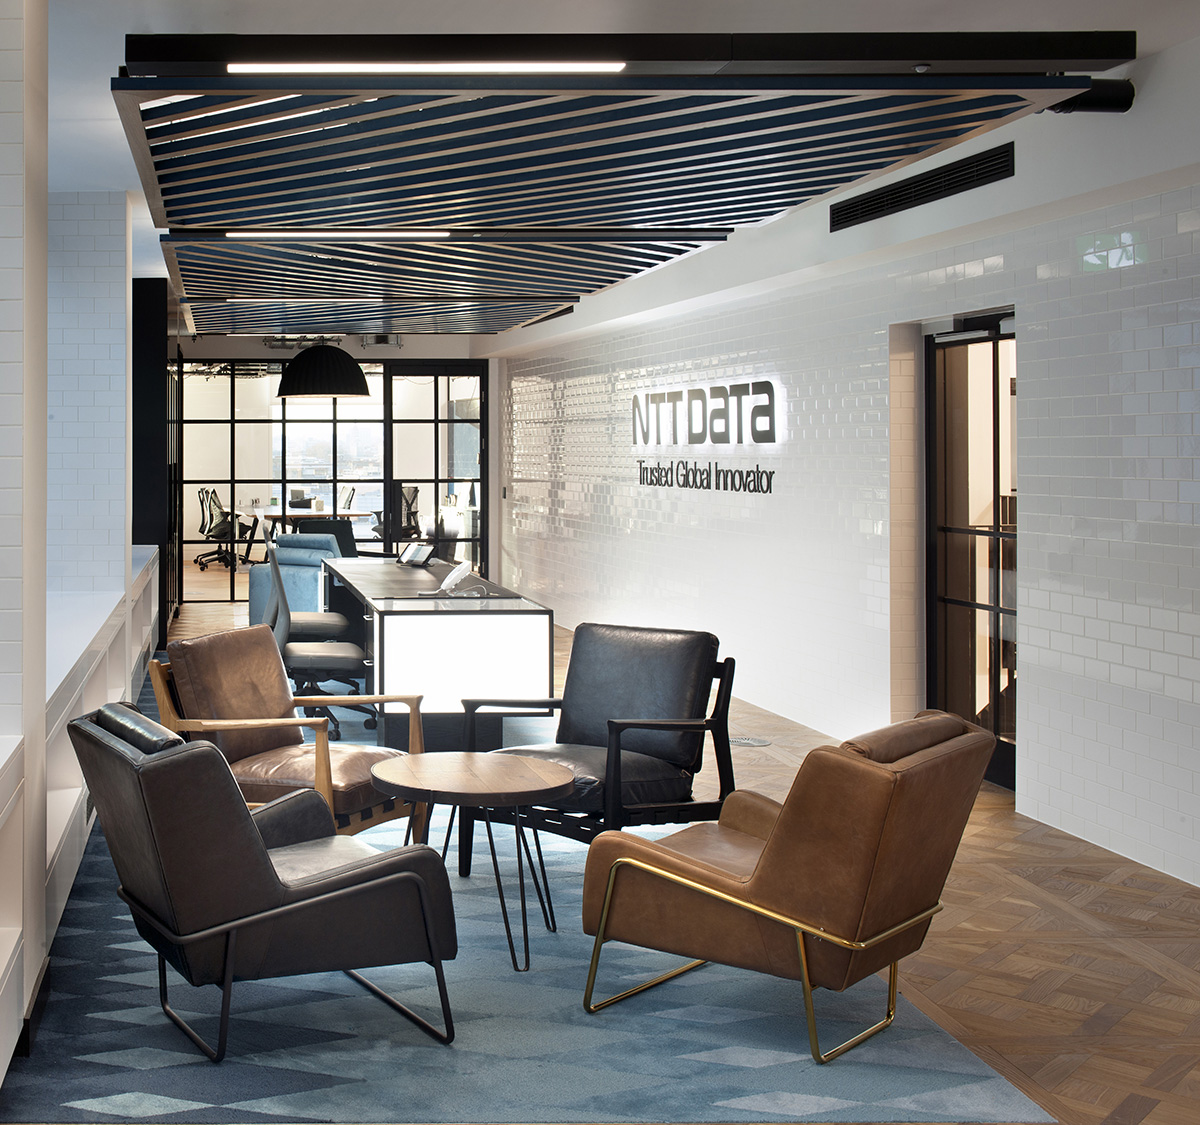 A Look Inside NTT Data's New London Office